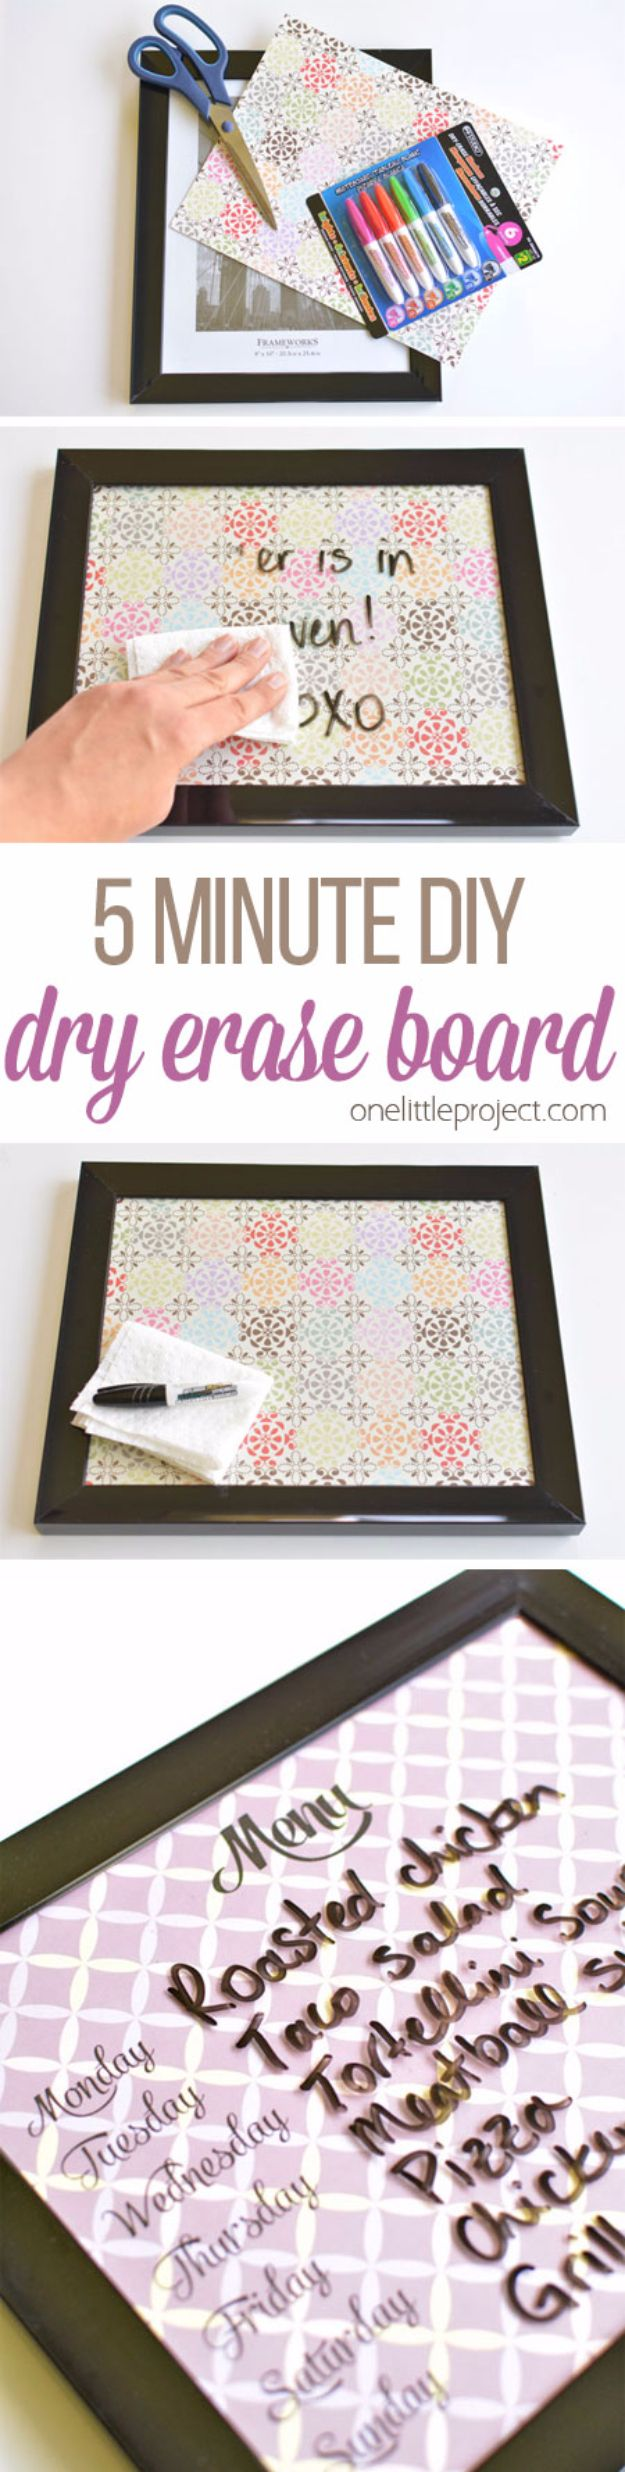 41 of the easiest diys ever simple craft ideas easy diy crafts 41 easiest diy projects ever easy diy whiteboards easy diy crafts and projects solutioingenieria Gallery